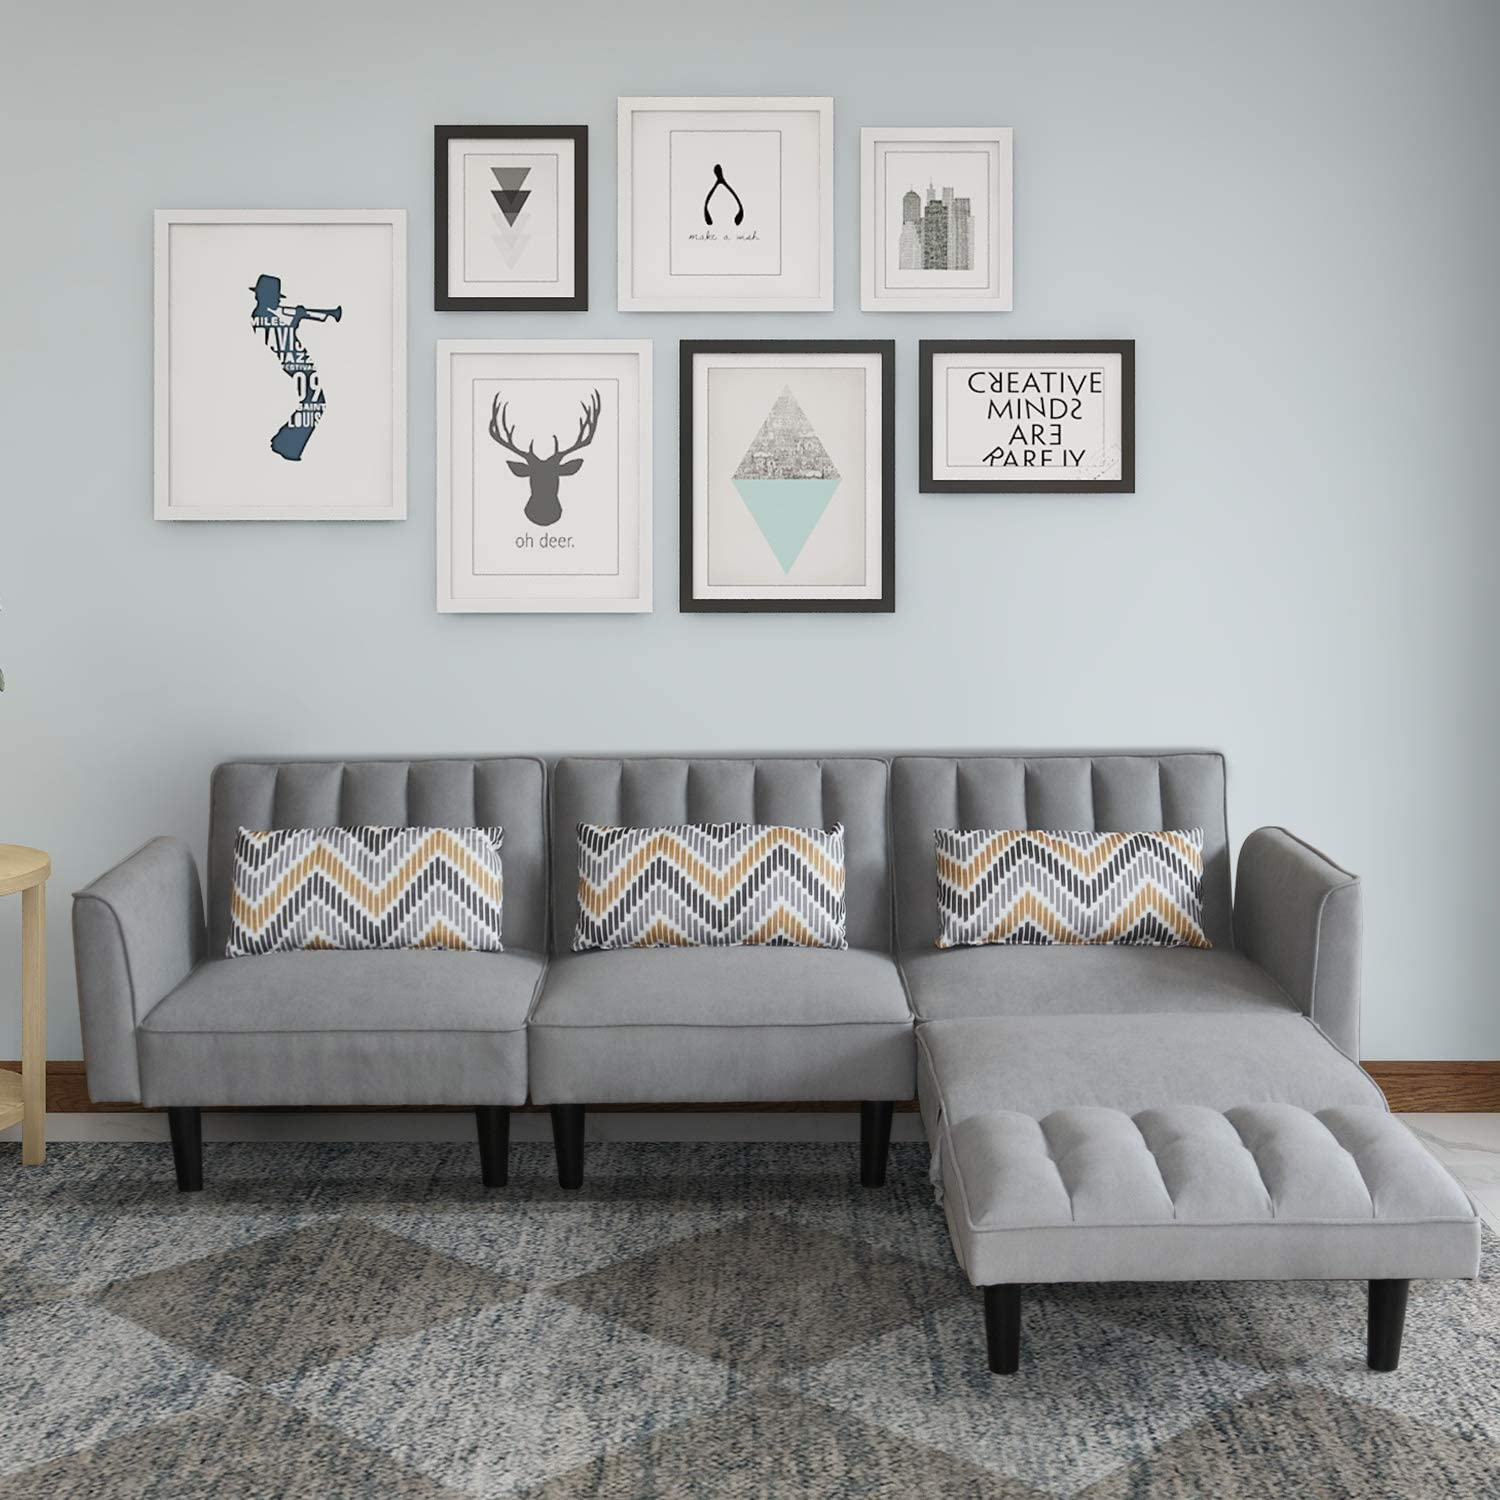 Modern Sectional Sofa with Pillows Linen Fabric Couch with Armrest 3-seat Sofas for Living Room Office Sofa Bed with Adjustable Back Three-Seater, Dark Grey